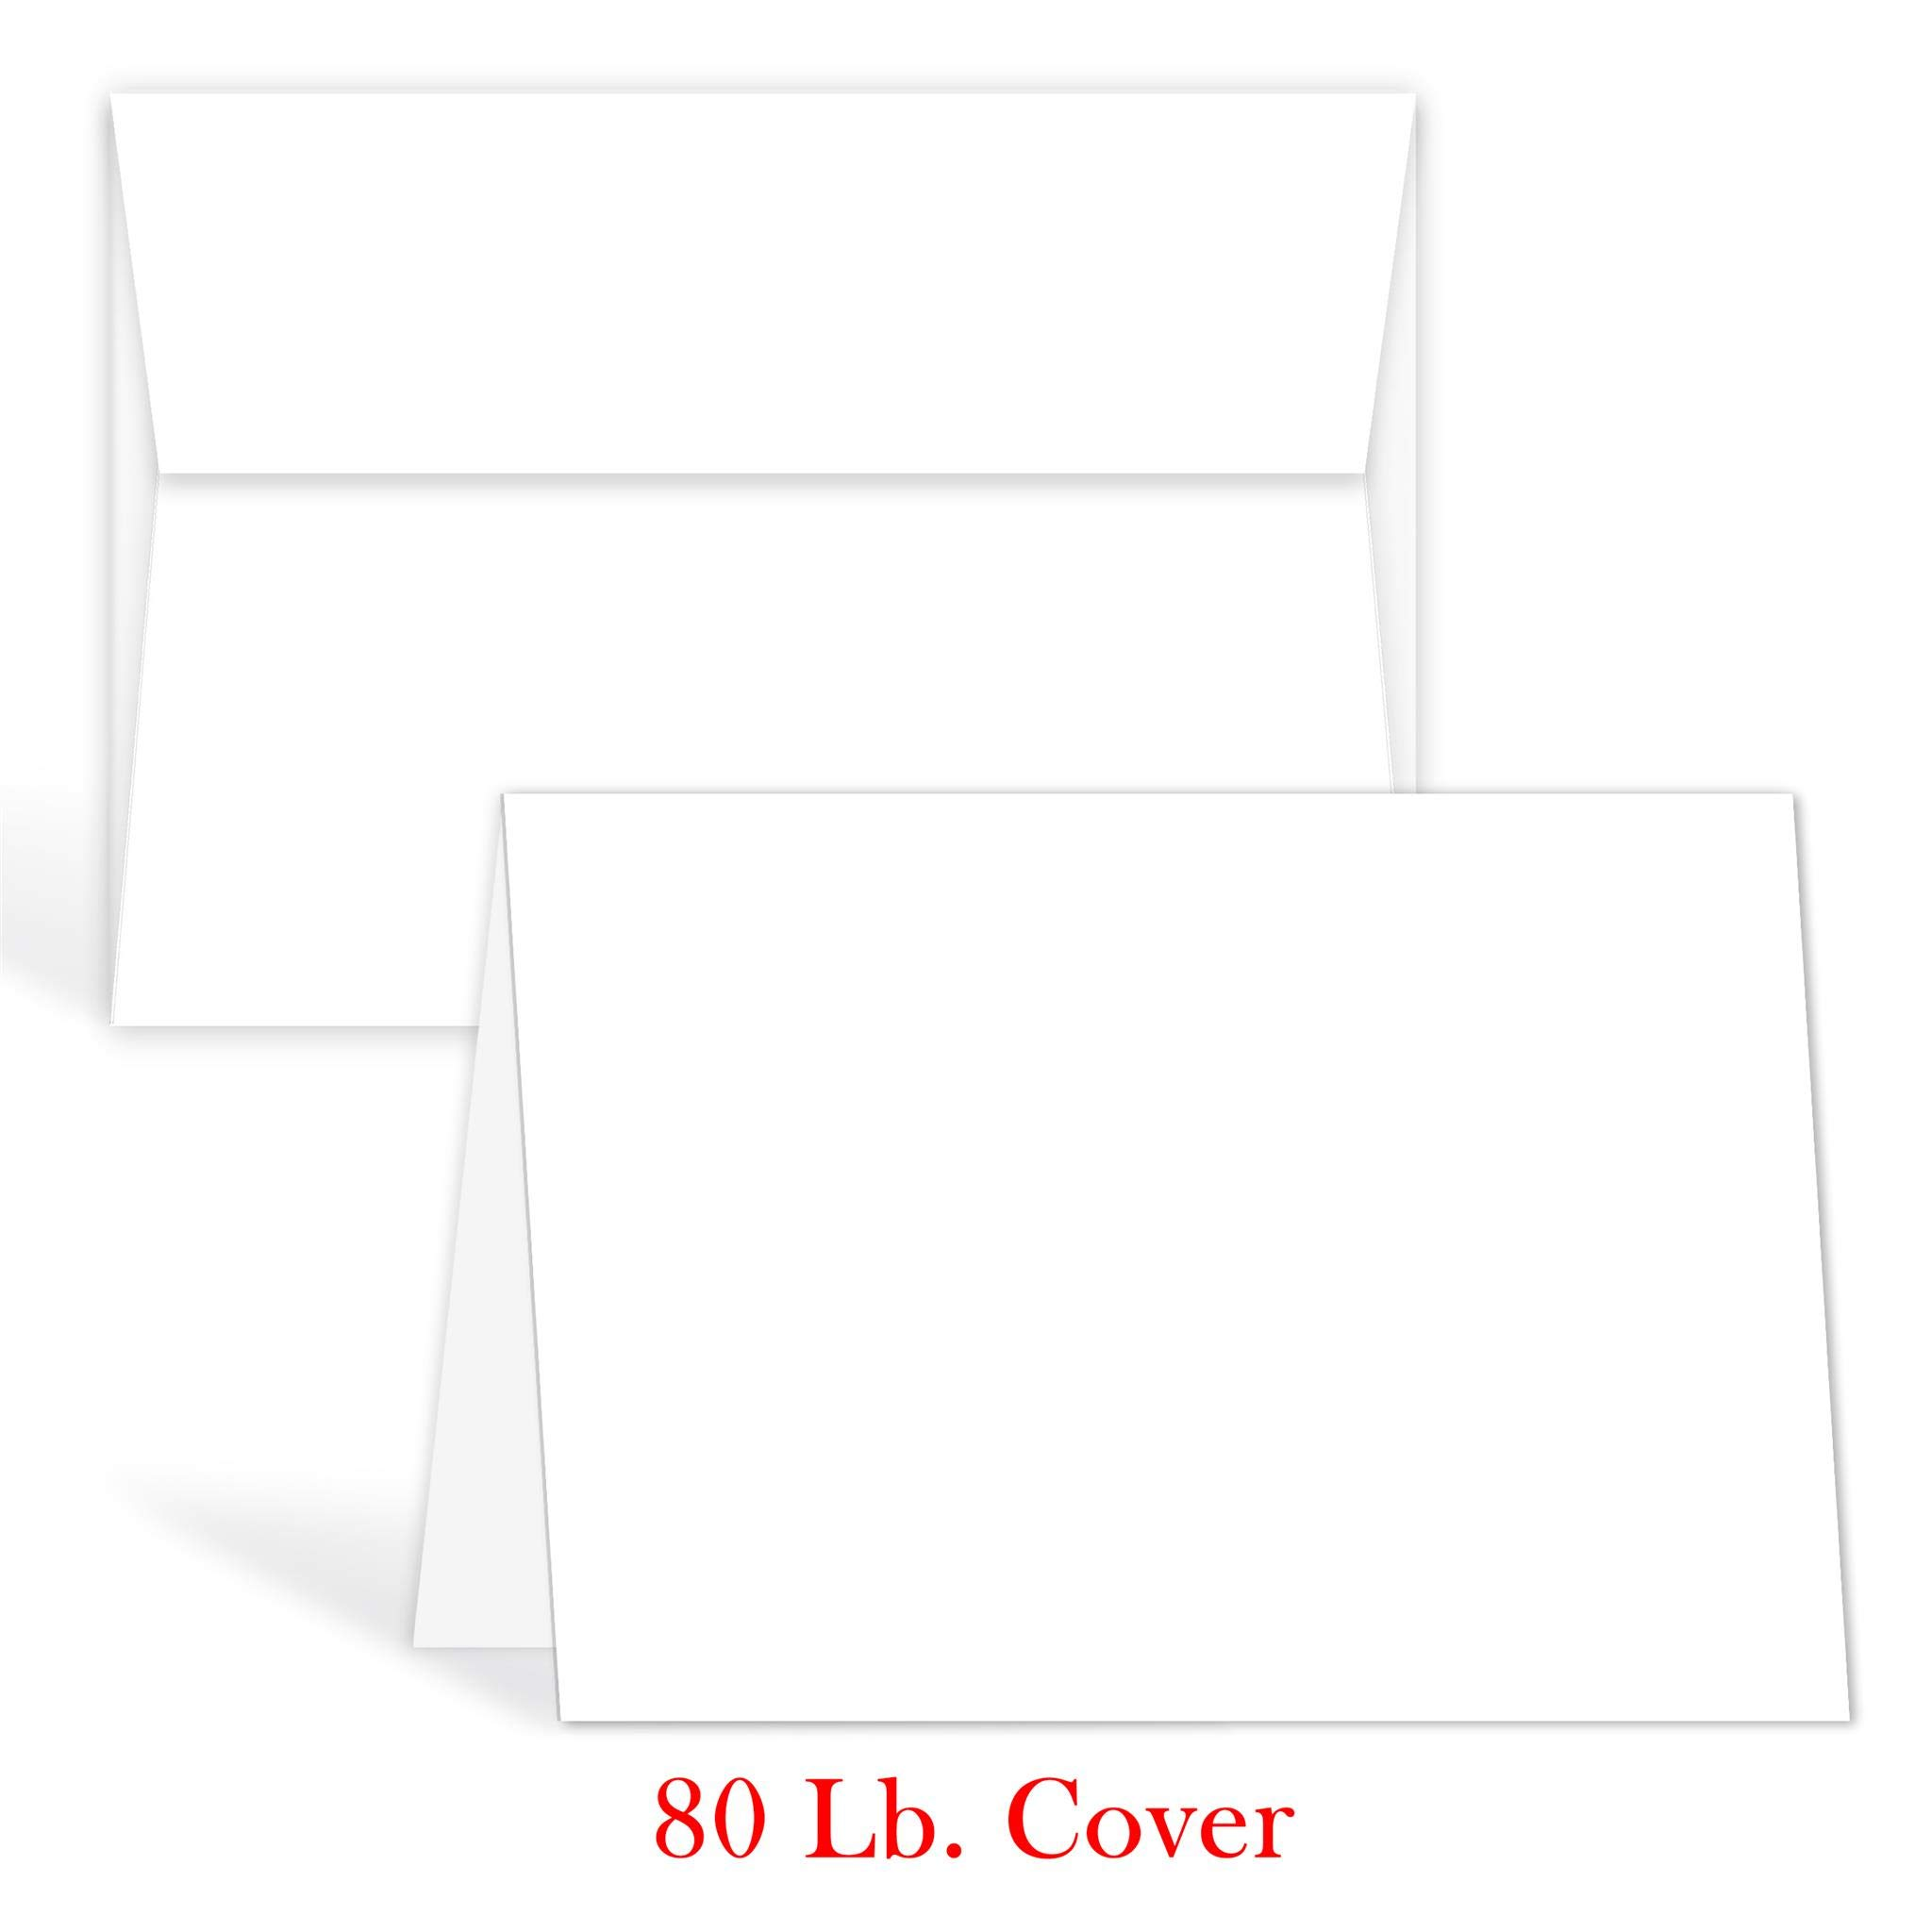 greeting cards set blank white cardstock and envelopes perfect for business invitations jpg 2048x2048 awesome avery